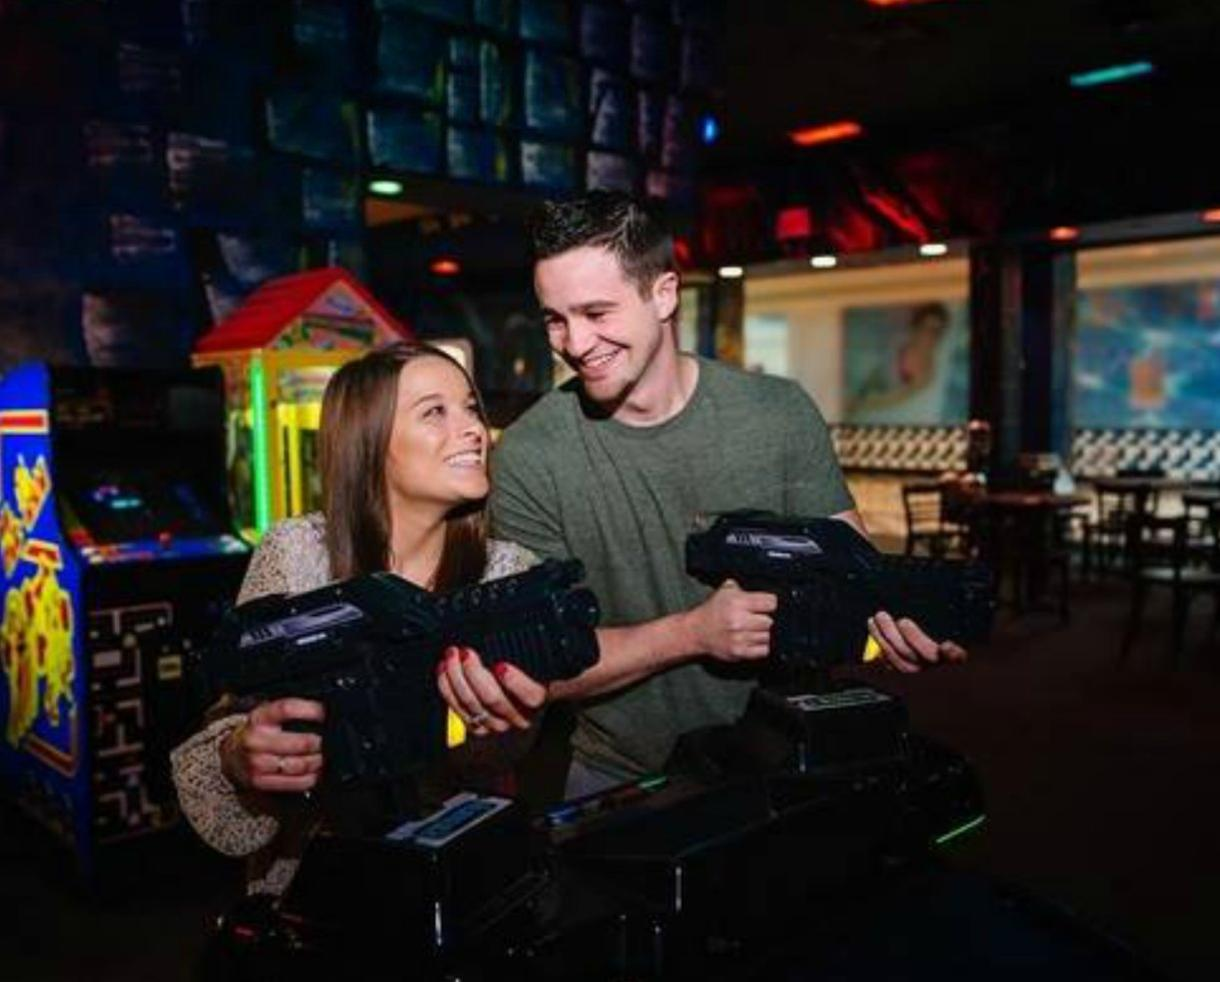 $11 for Two Rounds of Glow Mini-Golf at Shadowland - VALID ANY DAY - Alexandria/Springfield Location ONLY (36% Off)